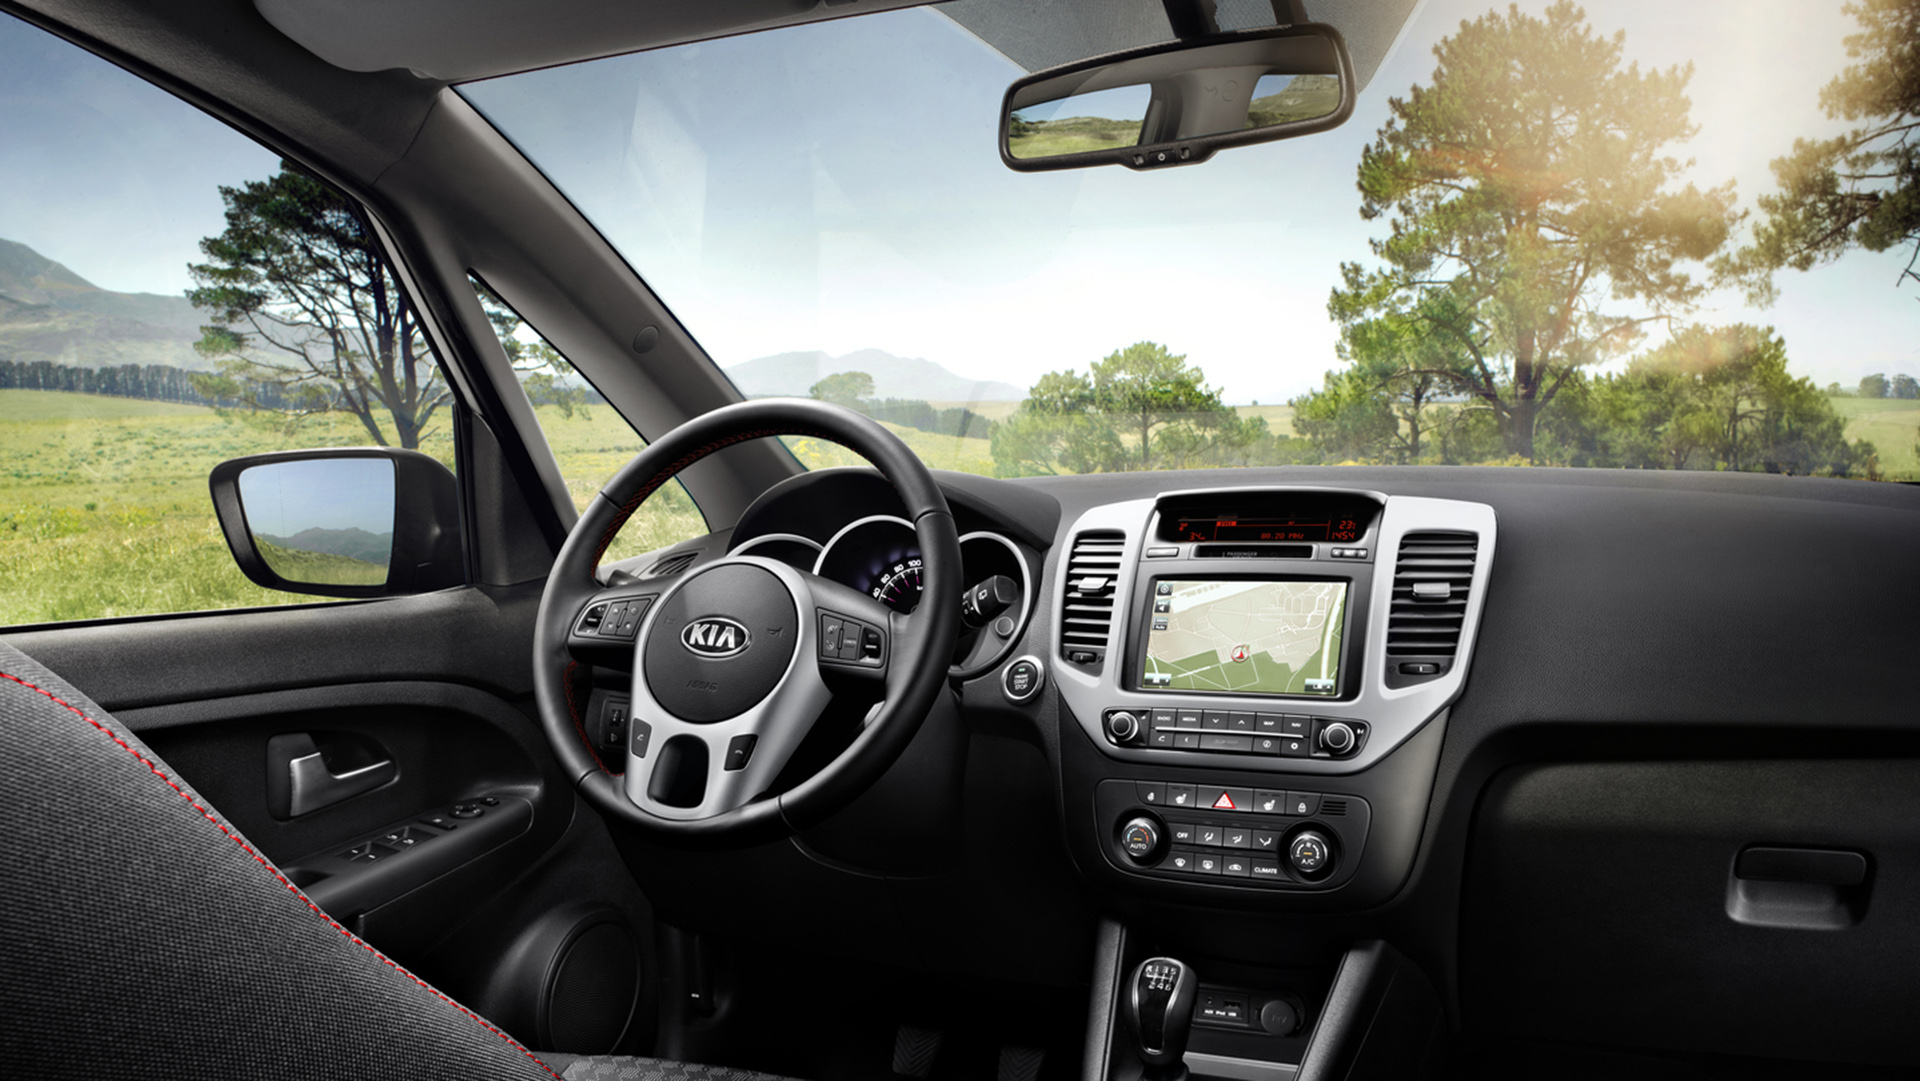 astounding-design-of-the-silver-radio-on-the-black-dash-ideas-with-black-and-silver-steering-as-the-kia-venga-2015-interior-ideas